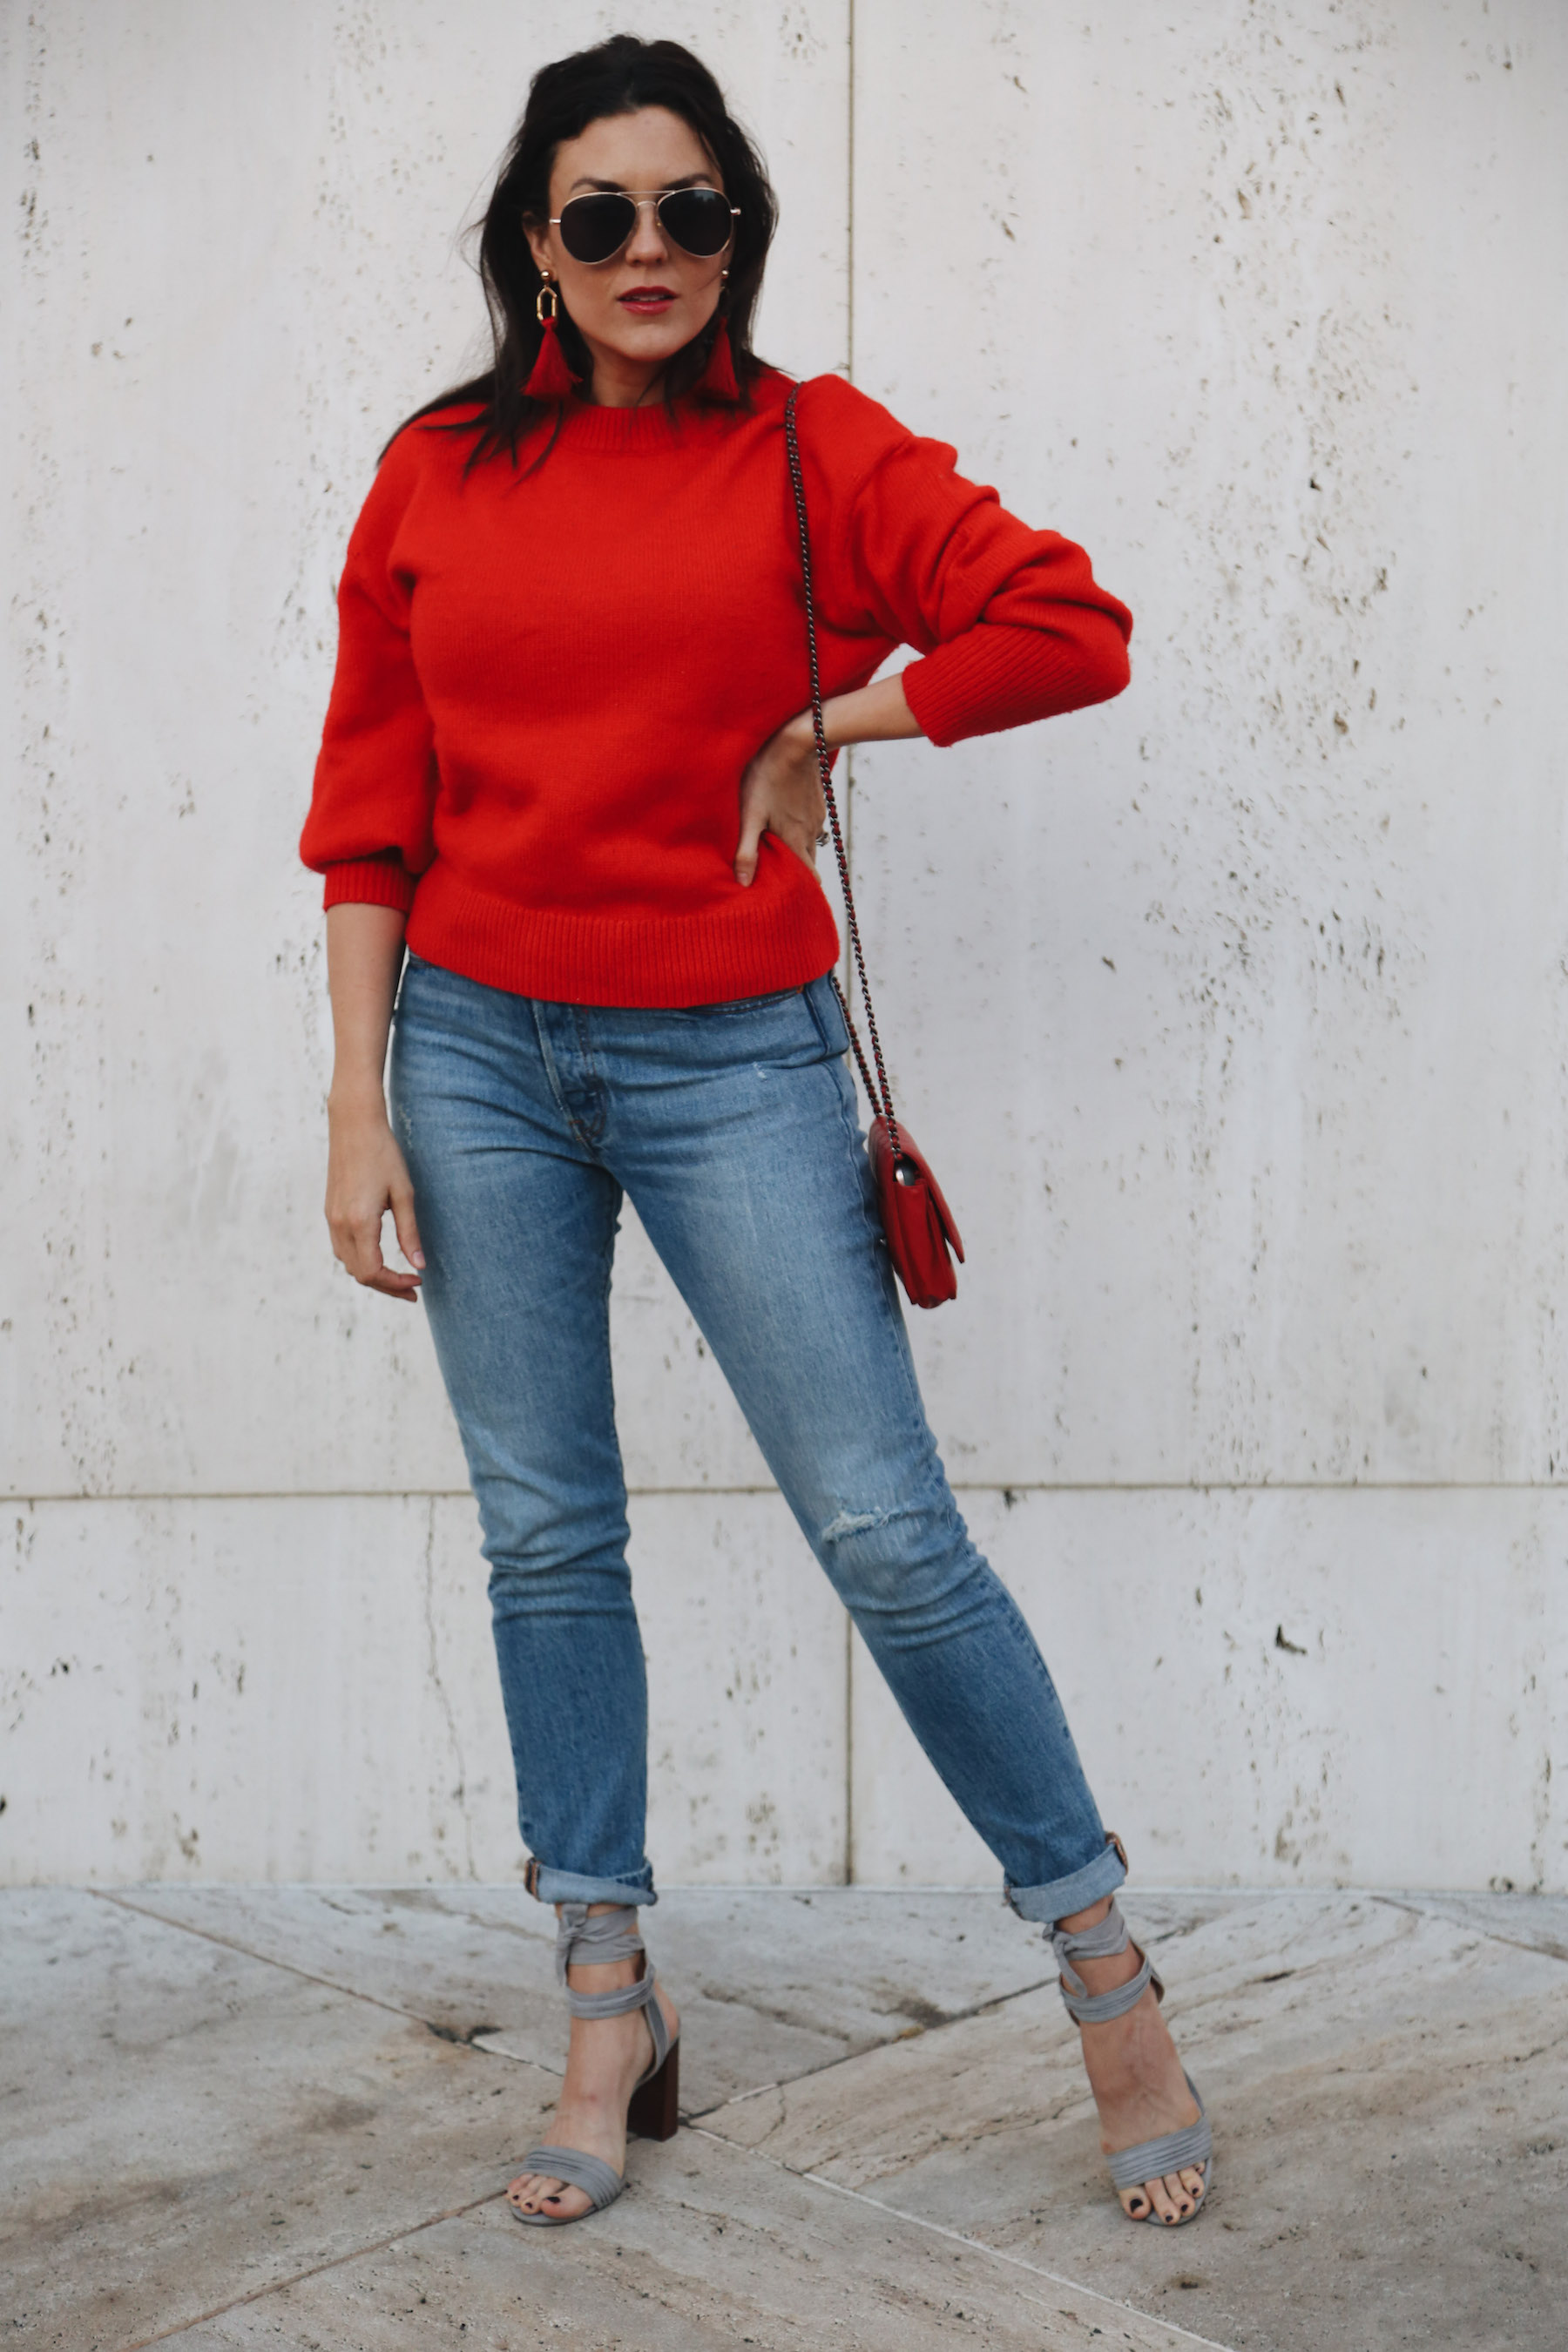 casual holiday outfit with red sweater1.jpg